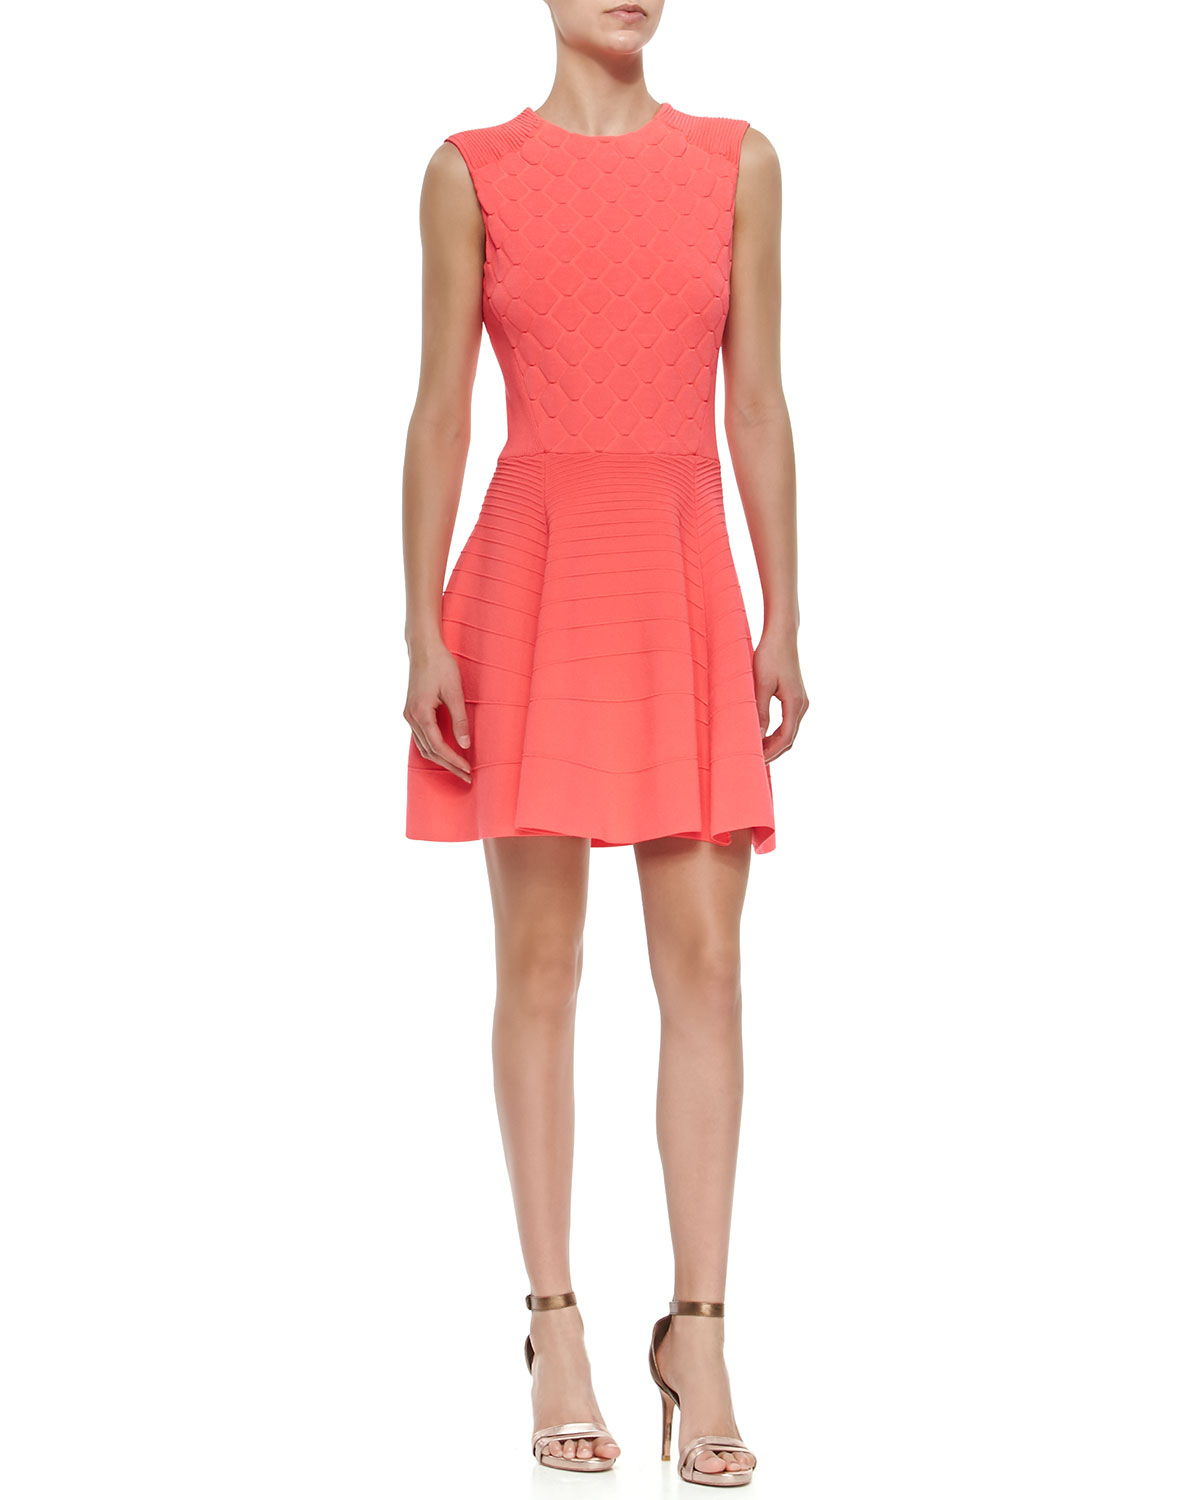 7e69fe13a87b Ted Baker London Textured Fit-and-Flare Sleeveless Dress